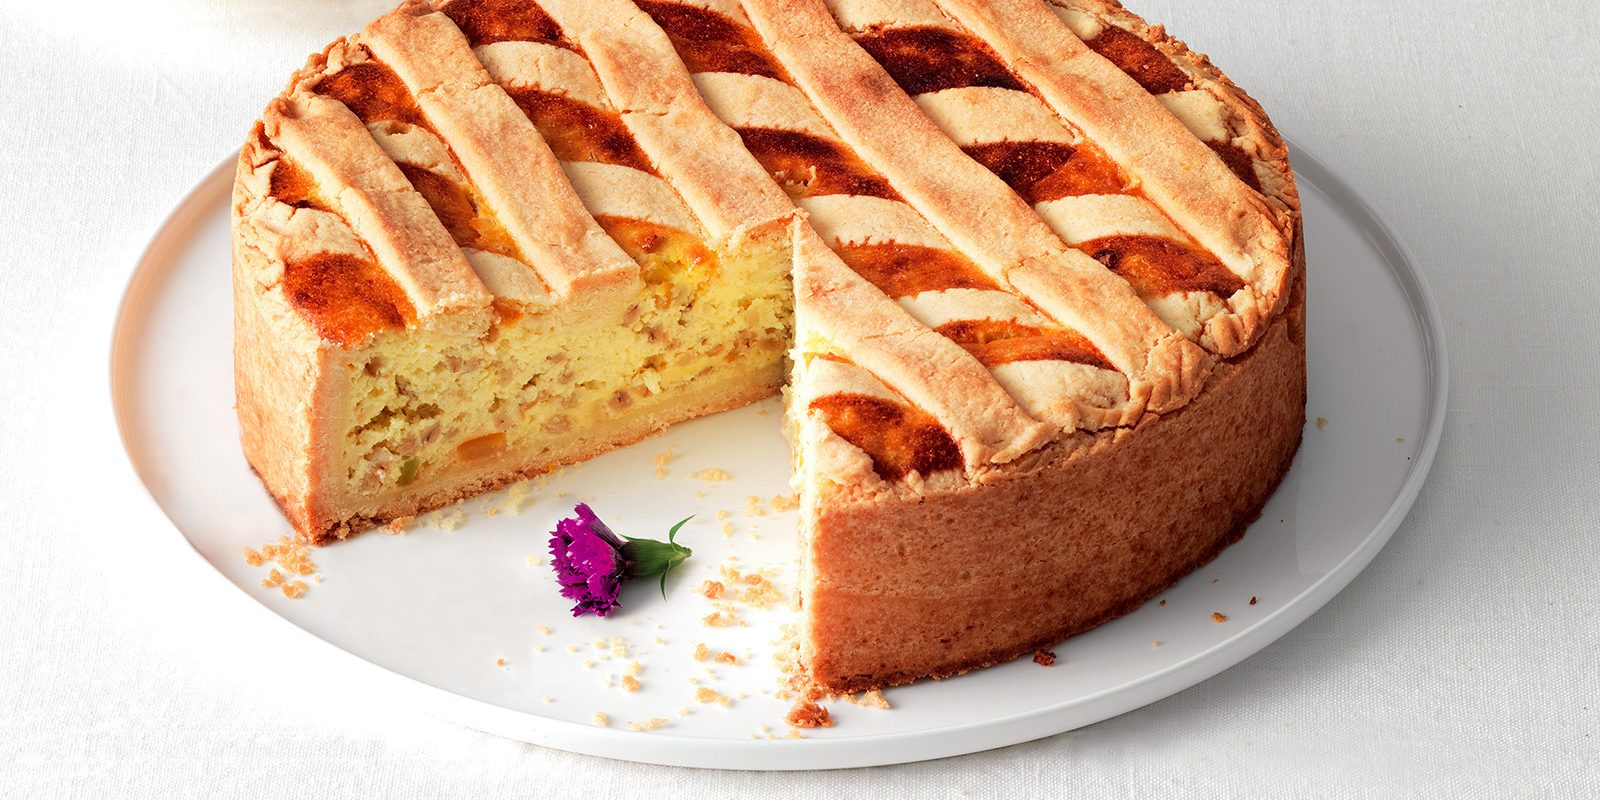 Check out the featured recipe of the week: Pastiera Napoletana! Photo via: www.lacucinaitaliana.it